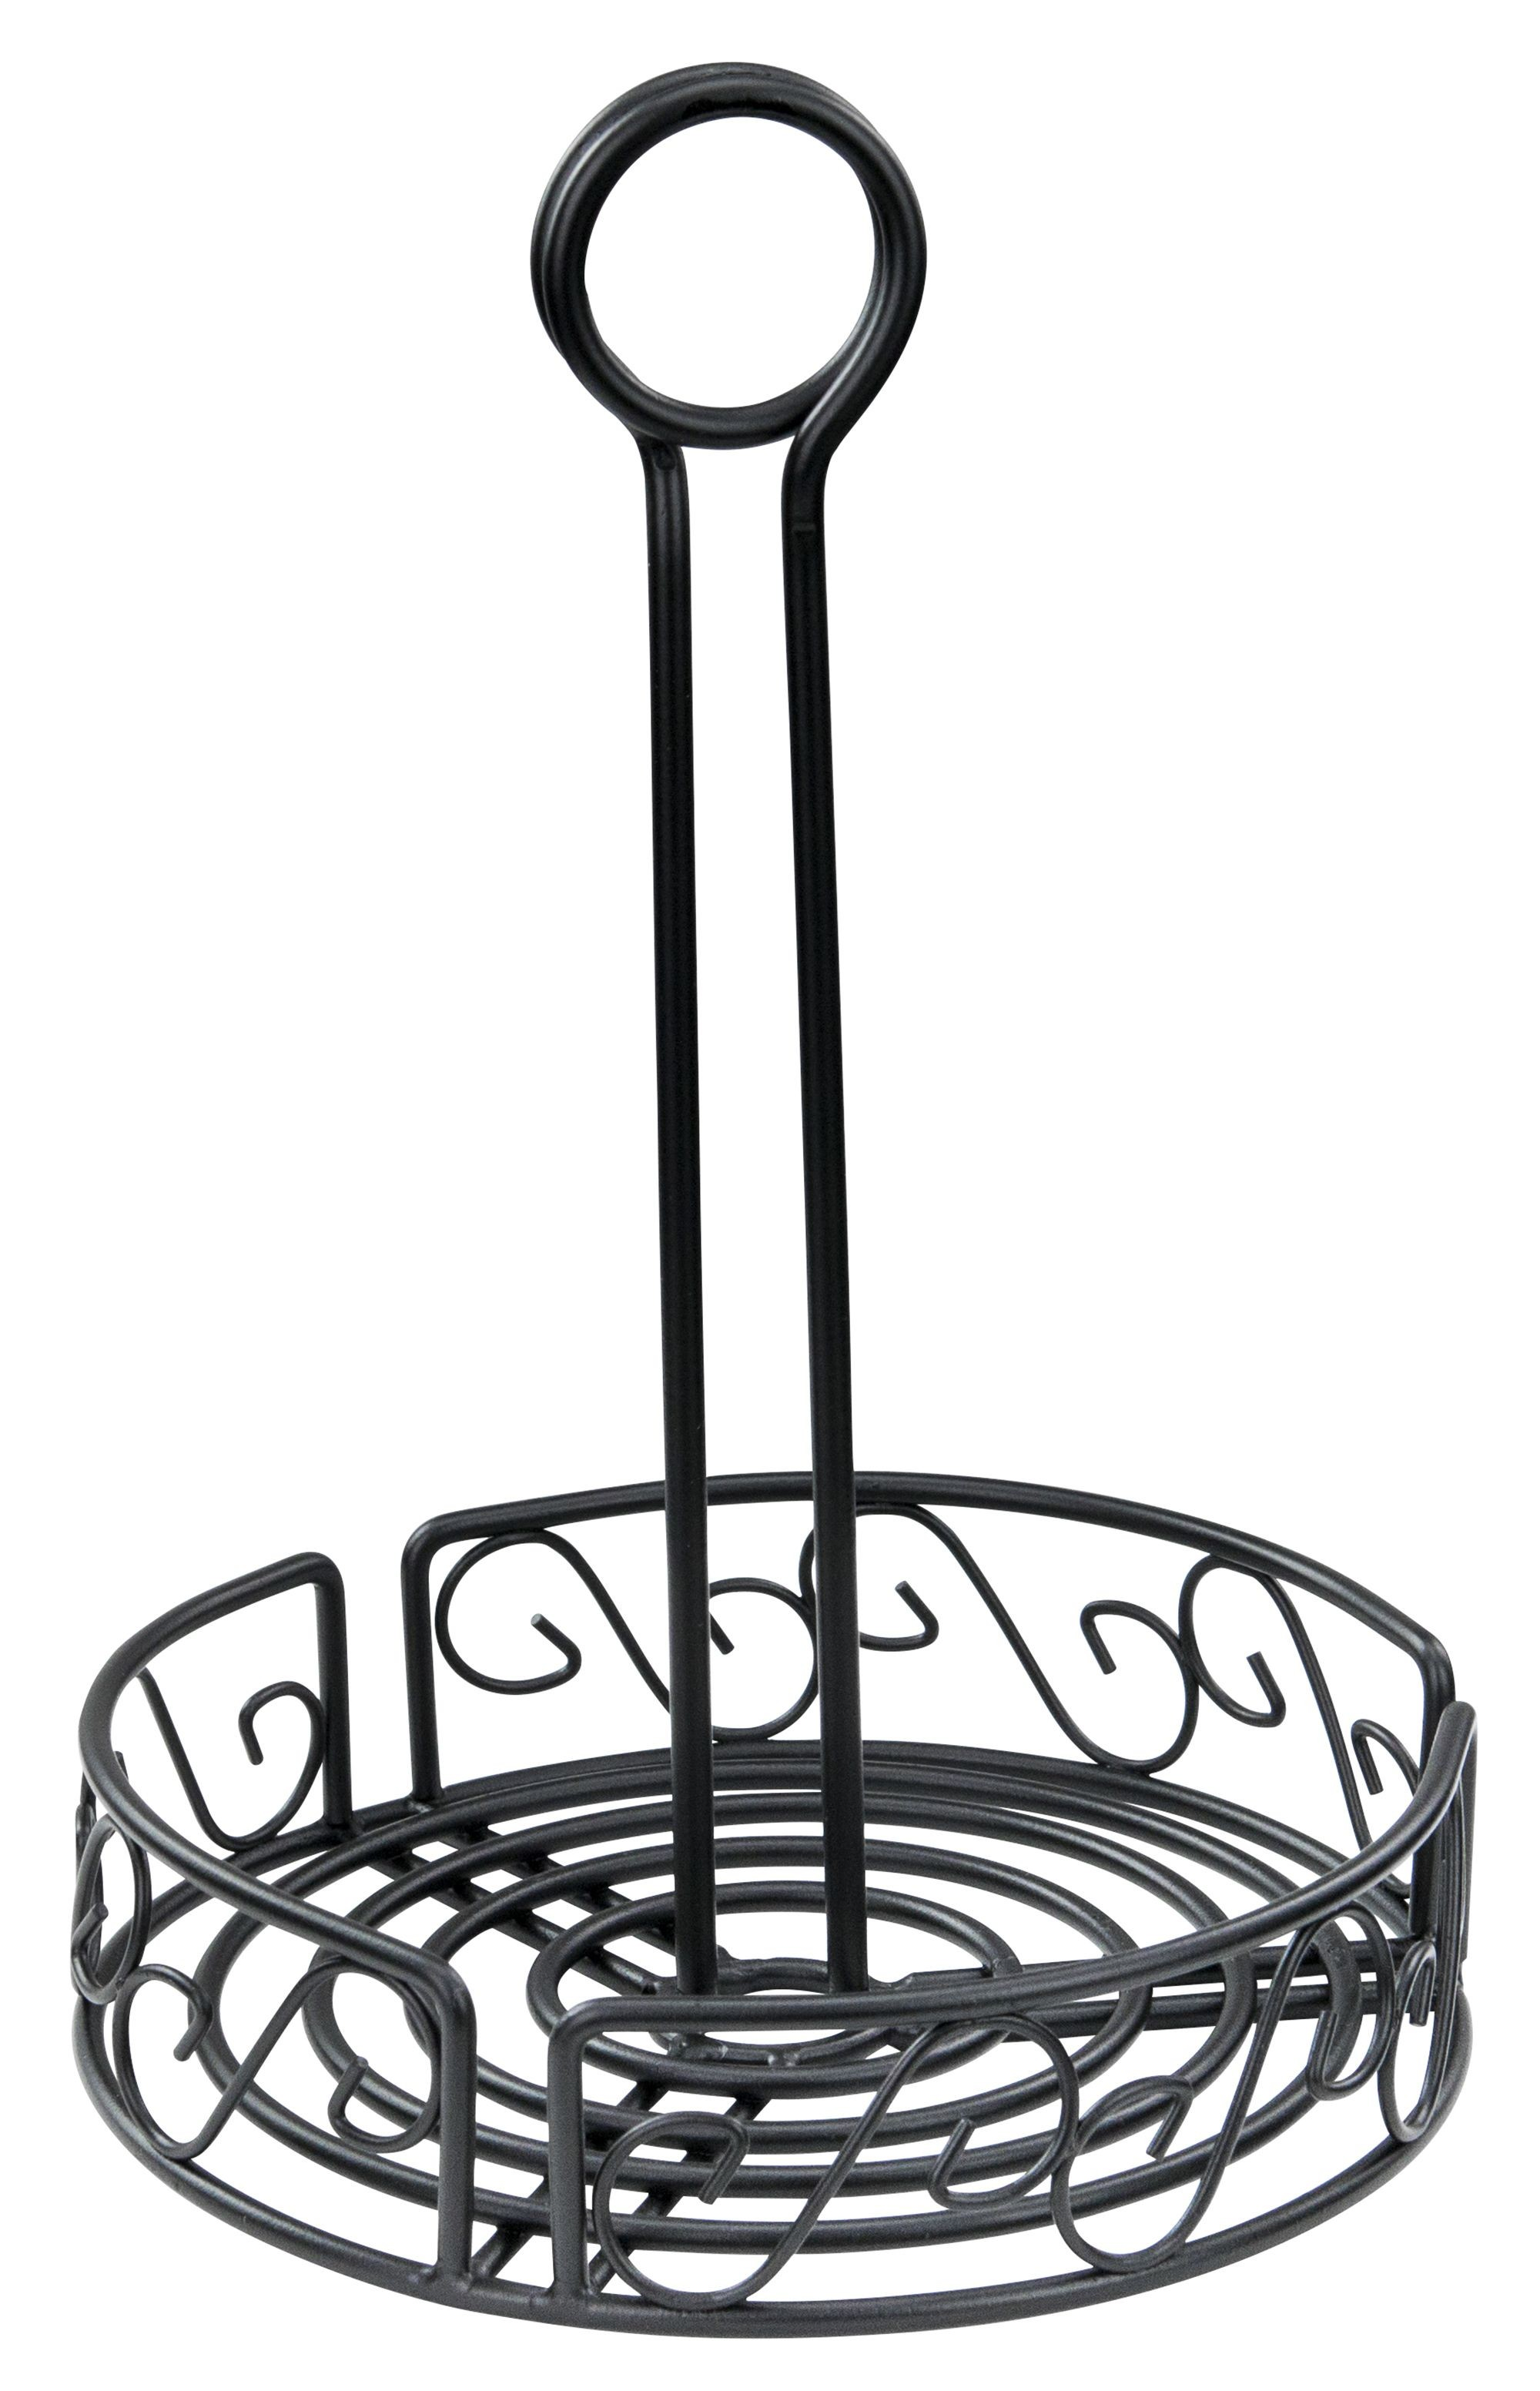 Winco Wbkh 6r Round Black Wire Condiment Caddy 6 1 4 X 9